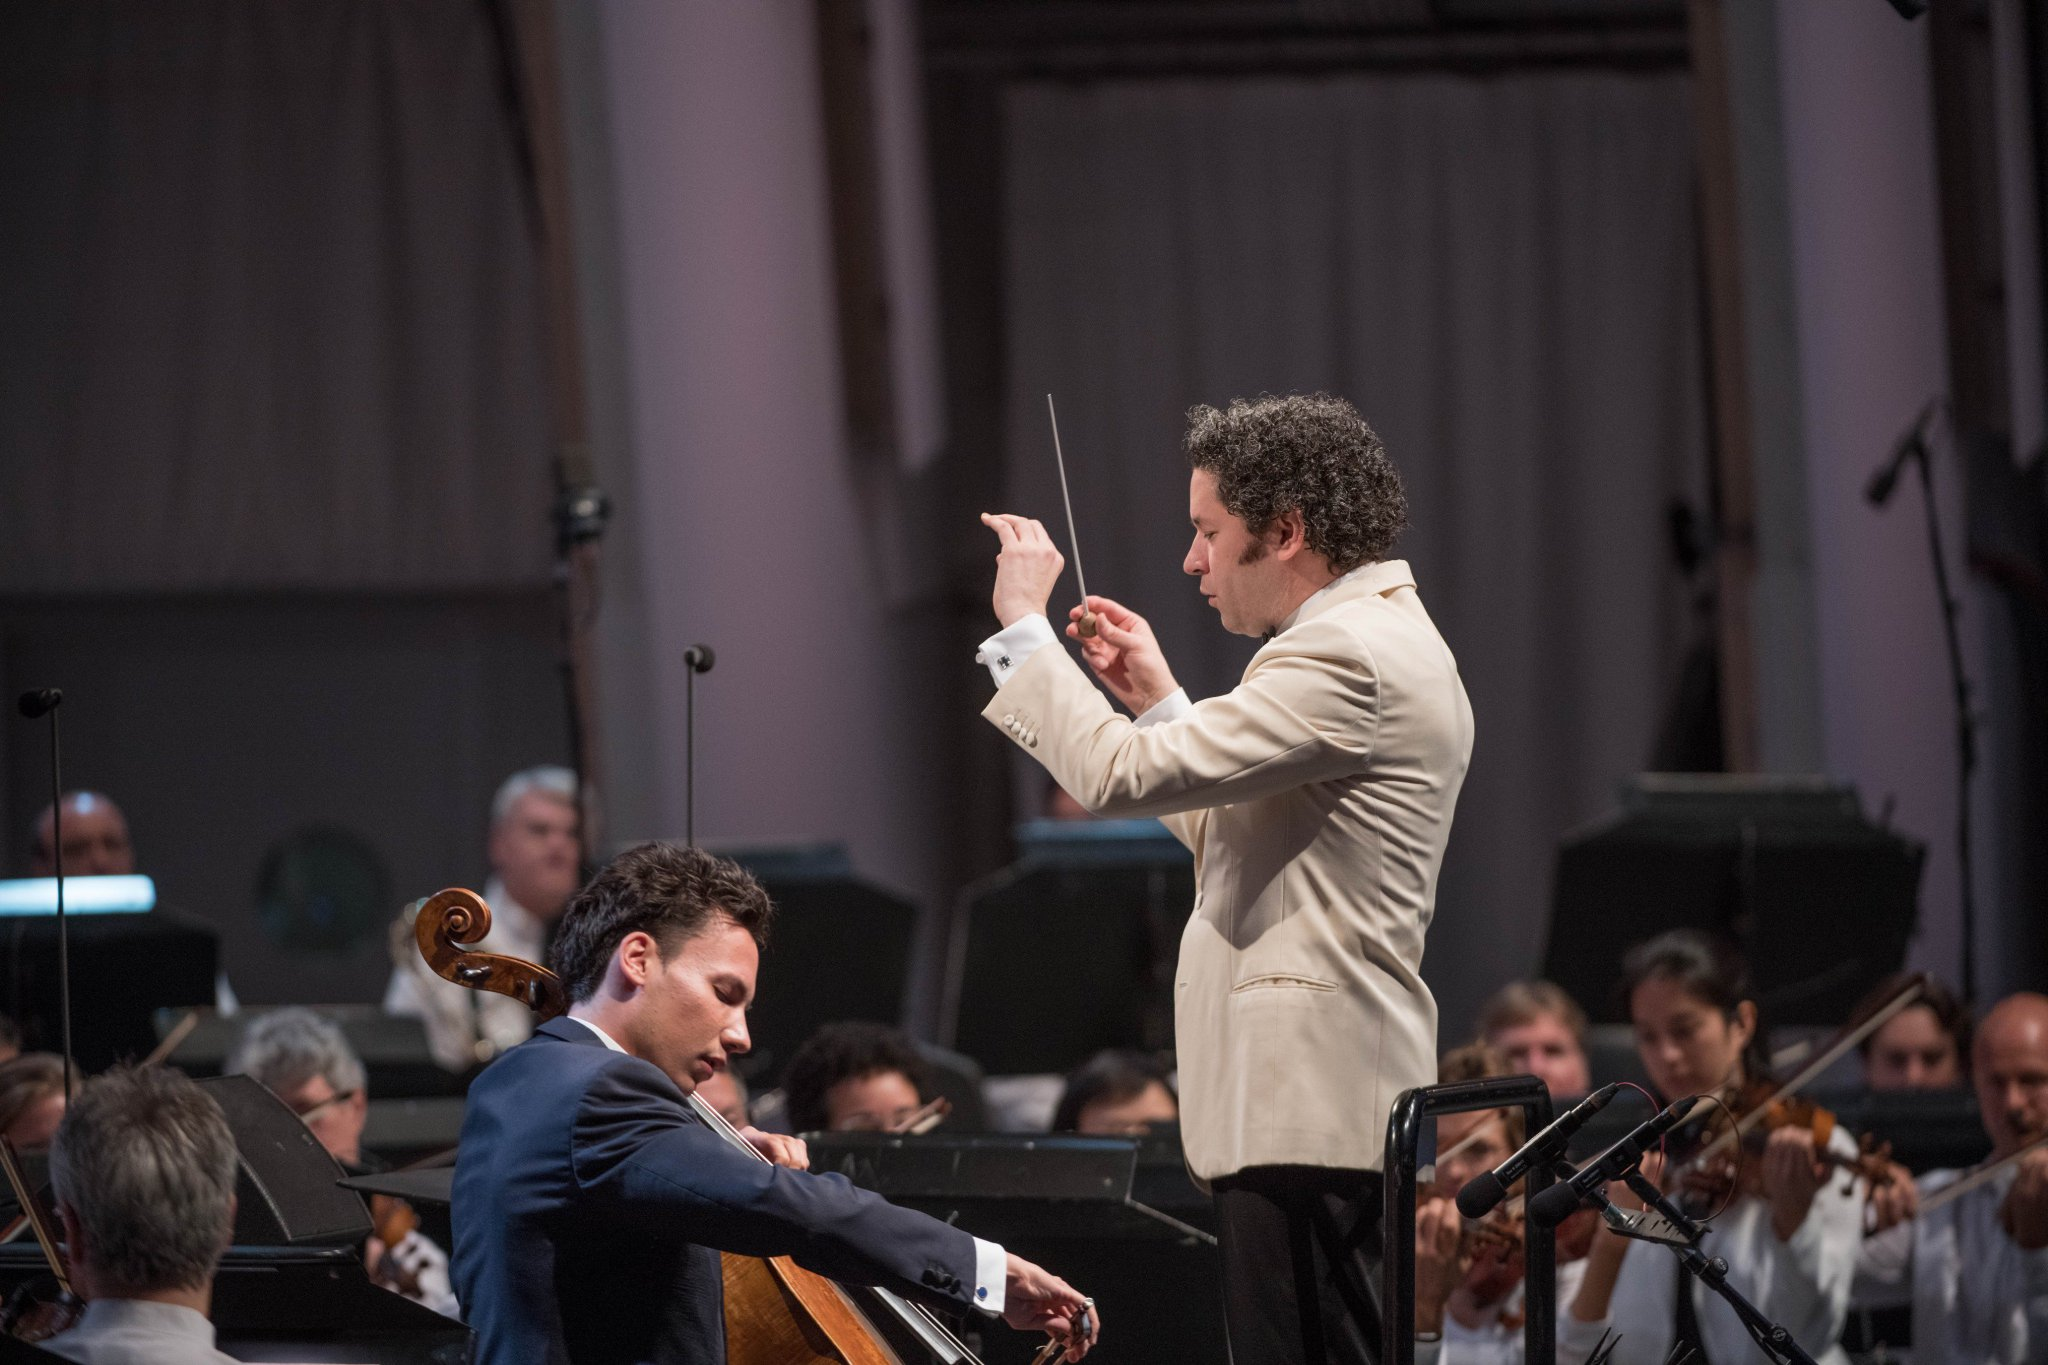 Reloaded twaddle – RT @GustavoDudamel: .@LennyBernstein put his complete spirit in every note of hi...